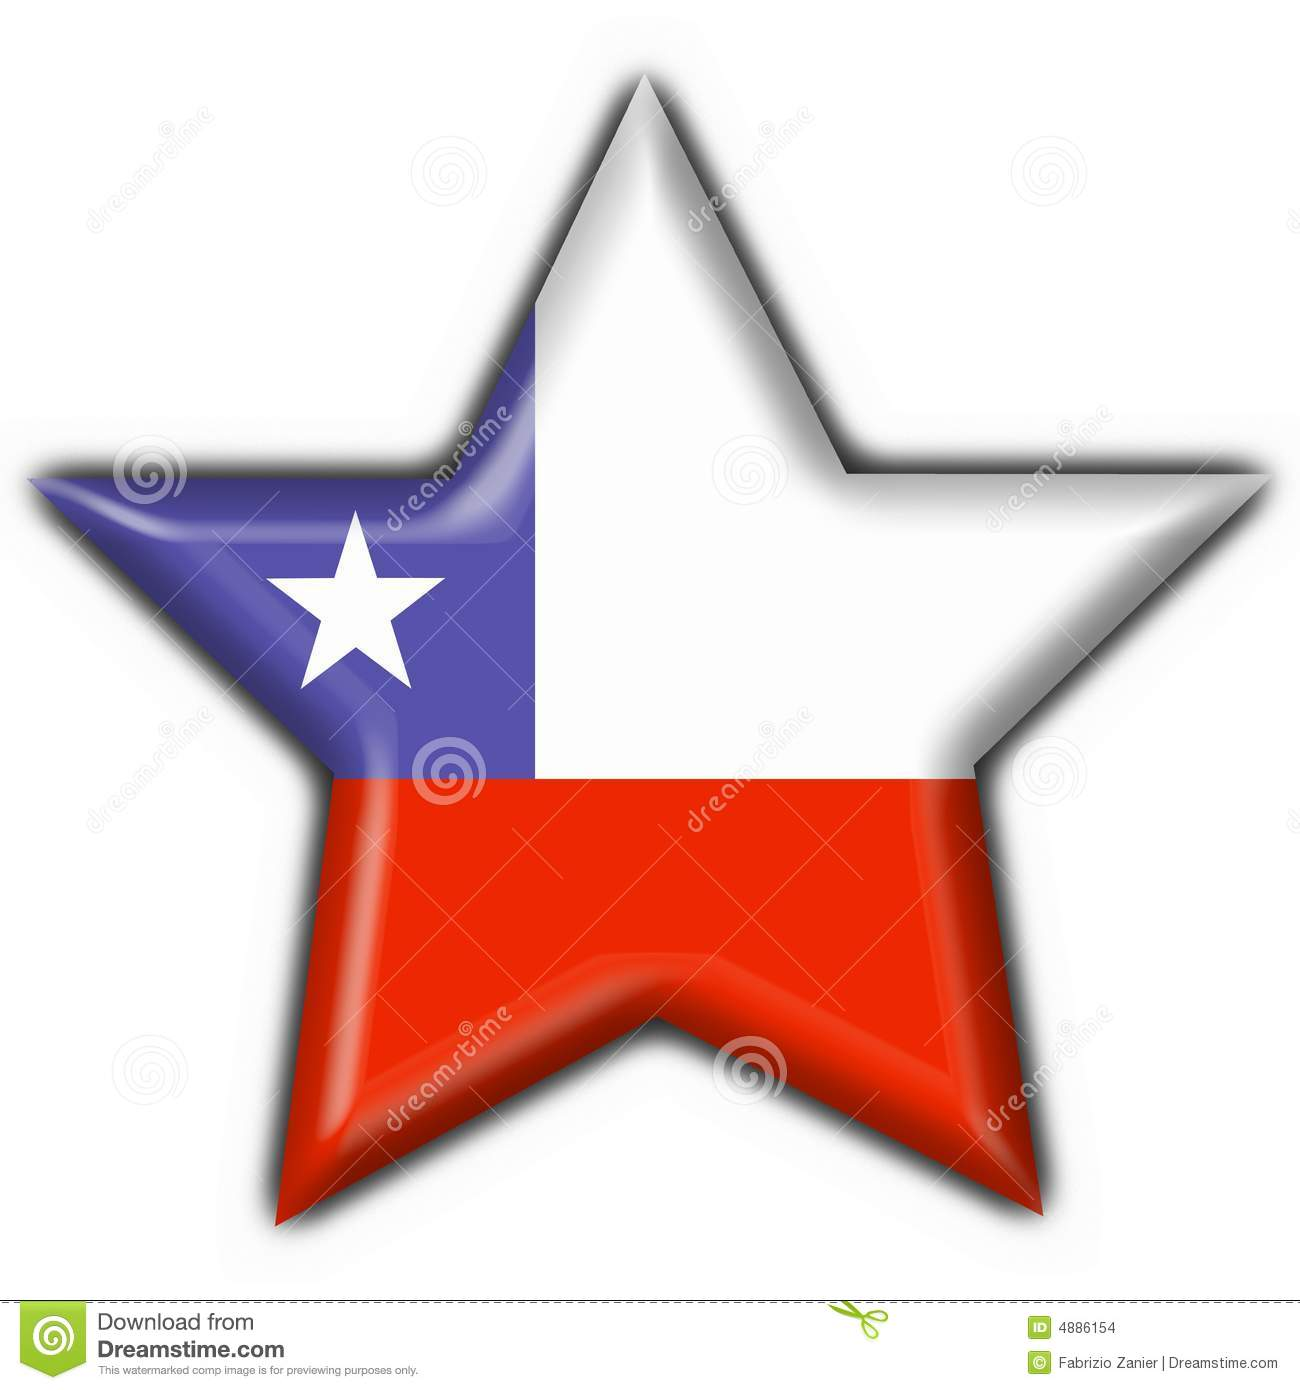 Chile button flag star shape stock illustration illustration of royalty free stock photo biocorpaavc Images